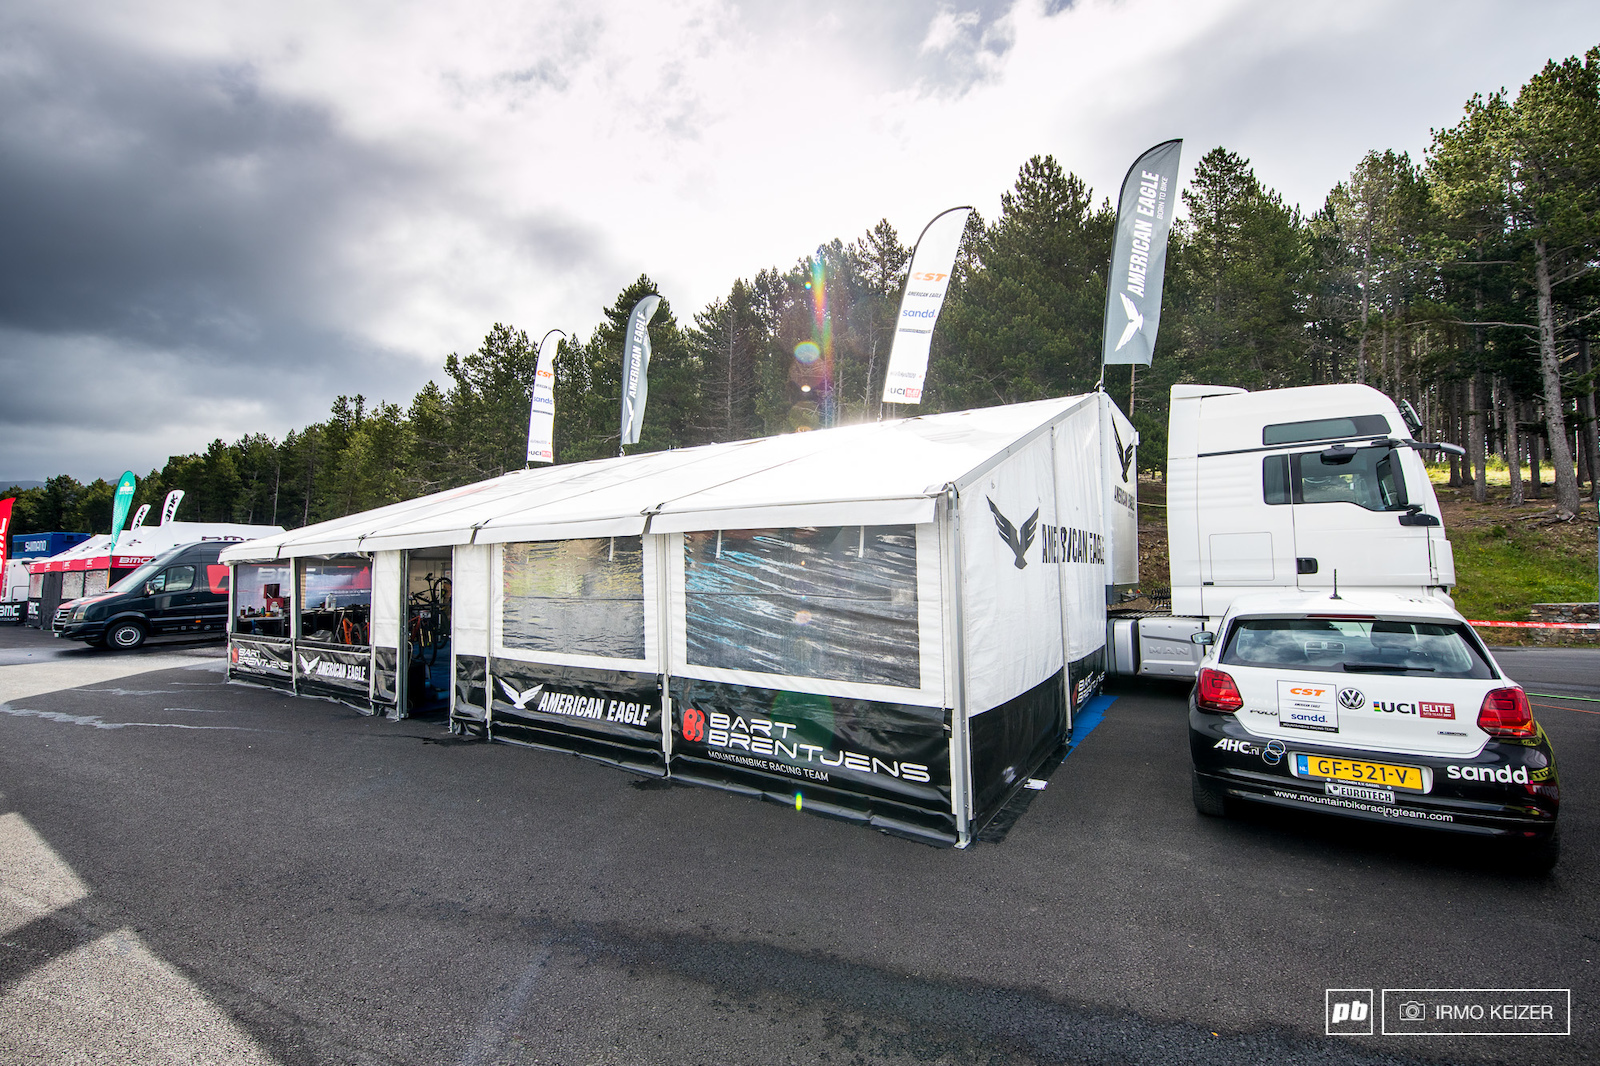 The CST-Sandd American Eagle setup is built around a big trailer. The Dutch team is run by Bart Brentjens mountainbiking s first Olympic Champion.